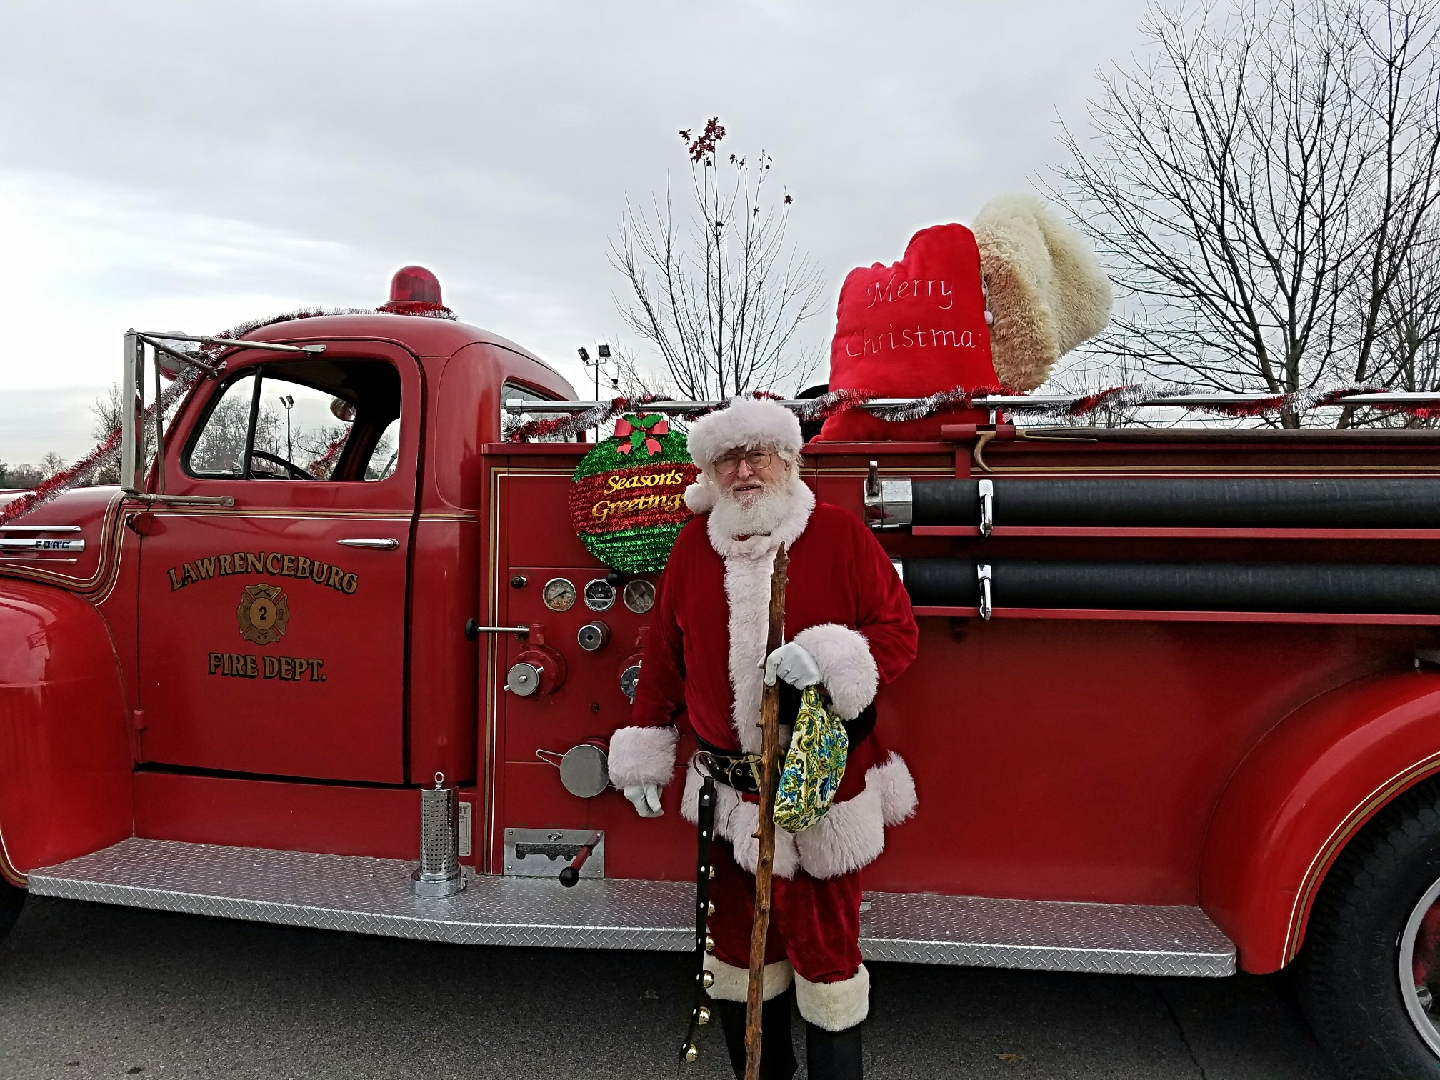 Lawrenceburg Christmas Parade 2020 Lawrenceburg Christmas parade   Kentucky Living